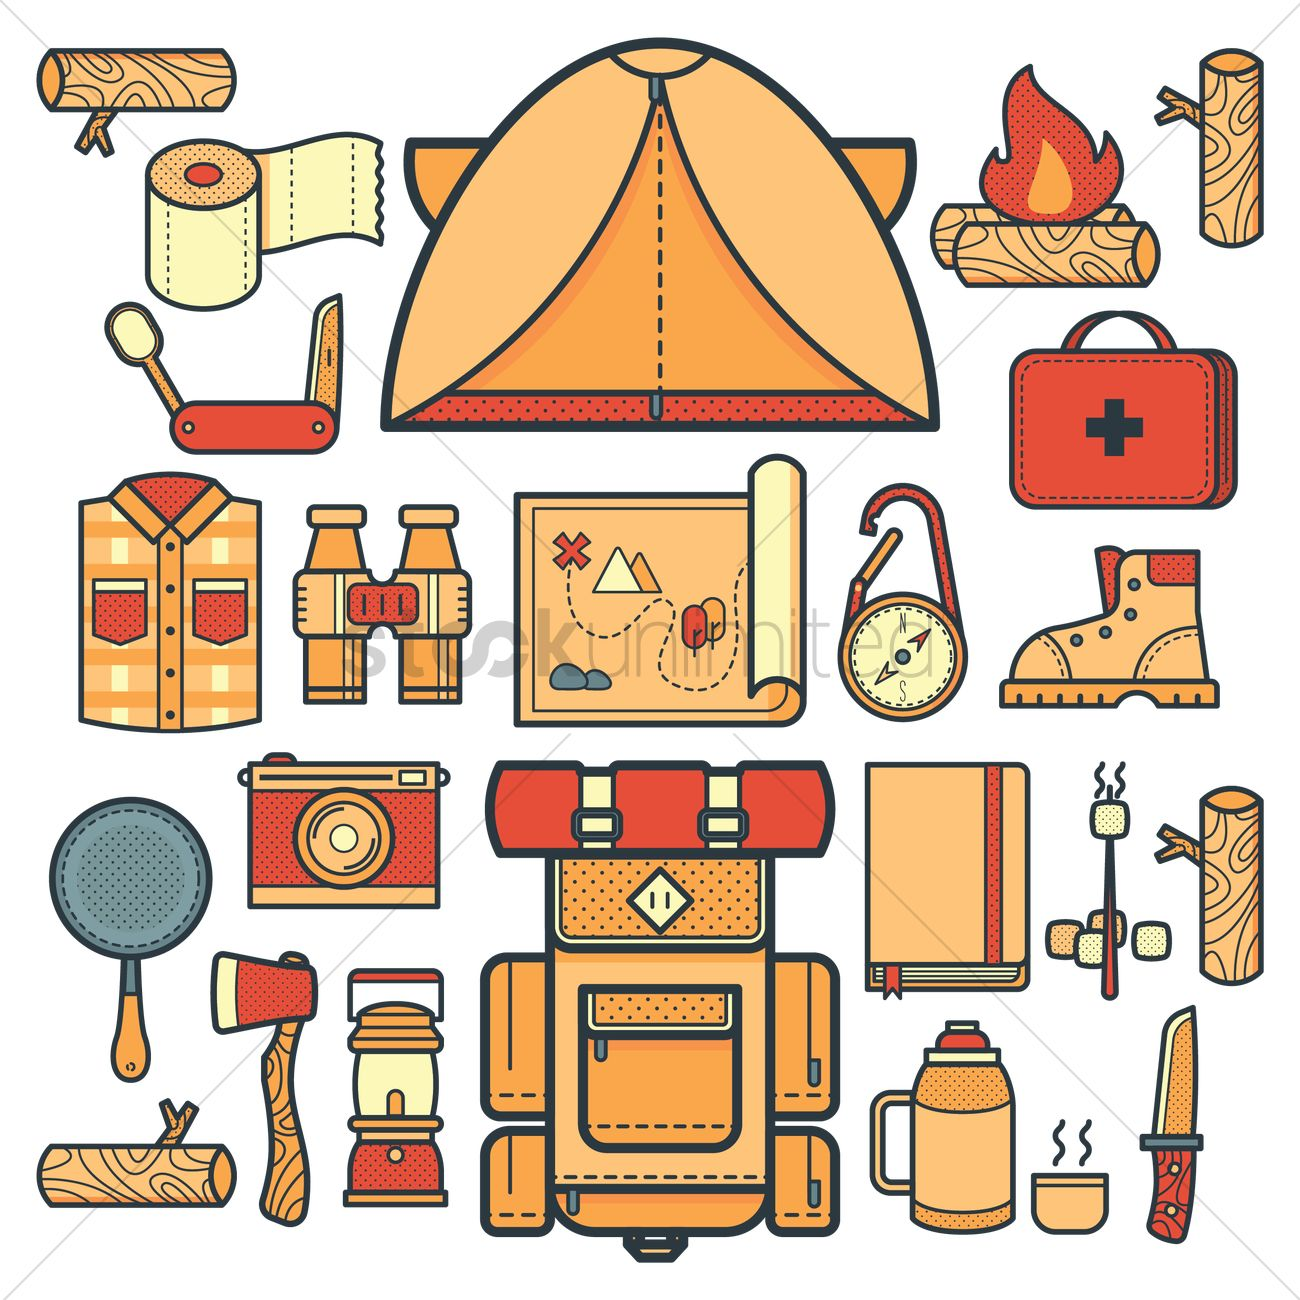 Tent Cartoon 5000*5000 transprent Png Free Download - Area, Communication,  Material. - CleanPNG / KissPNG